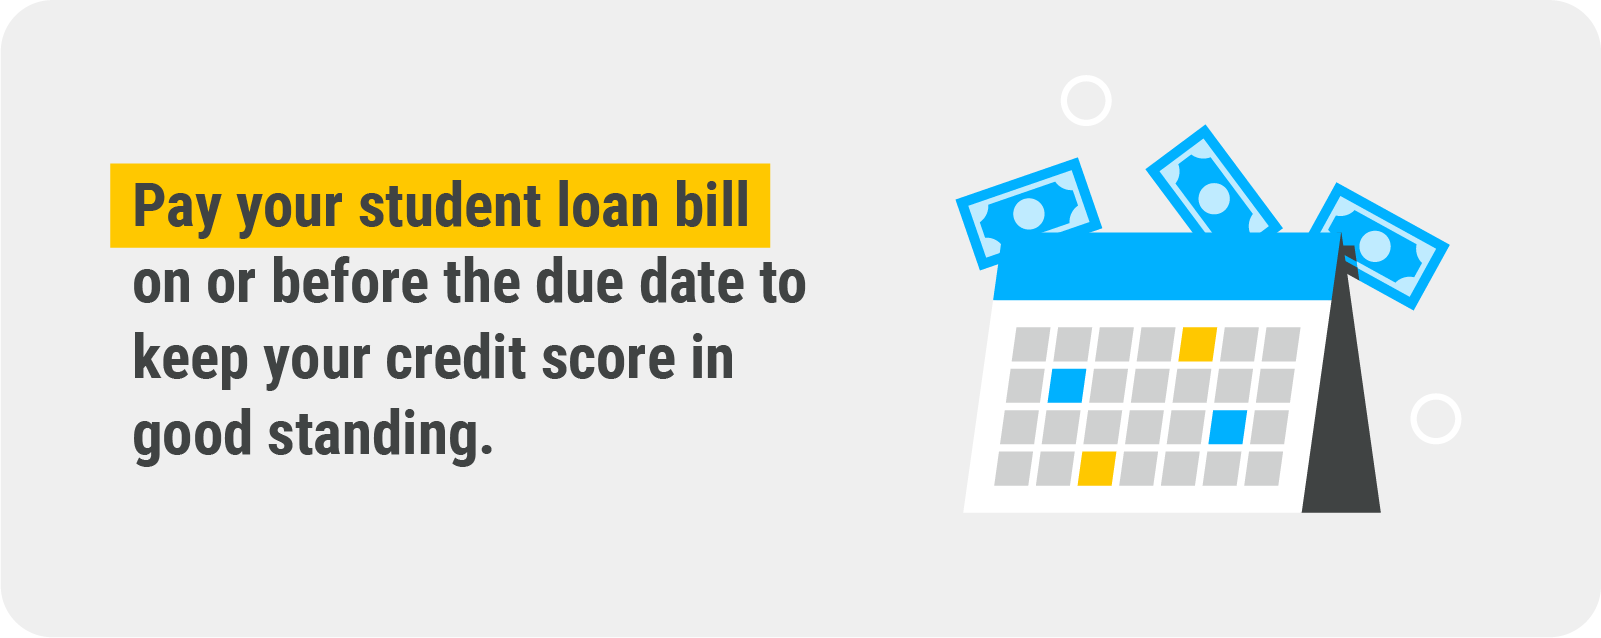 pay your student loan bill